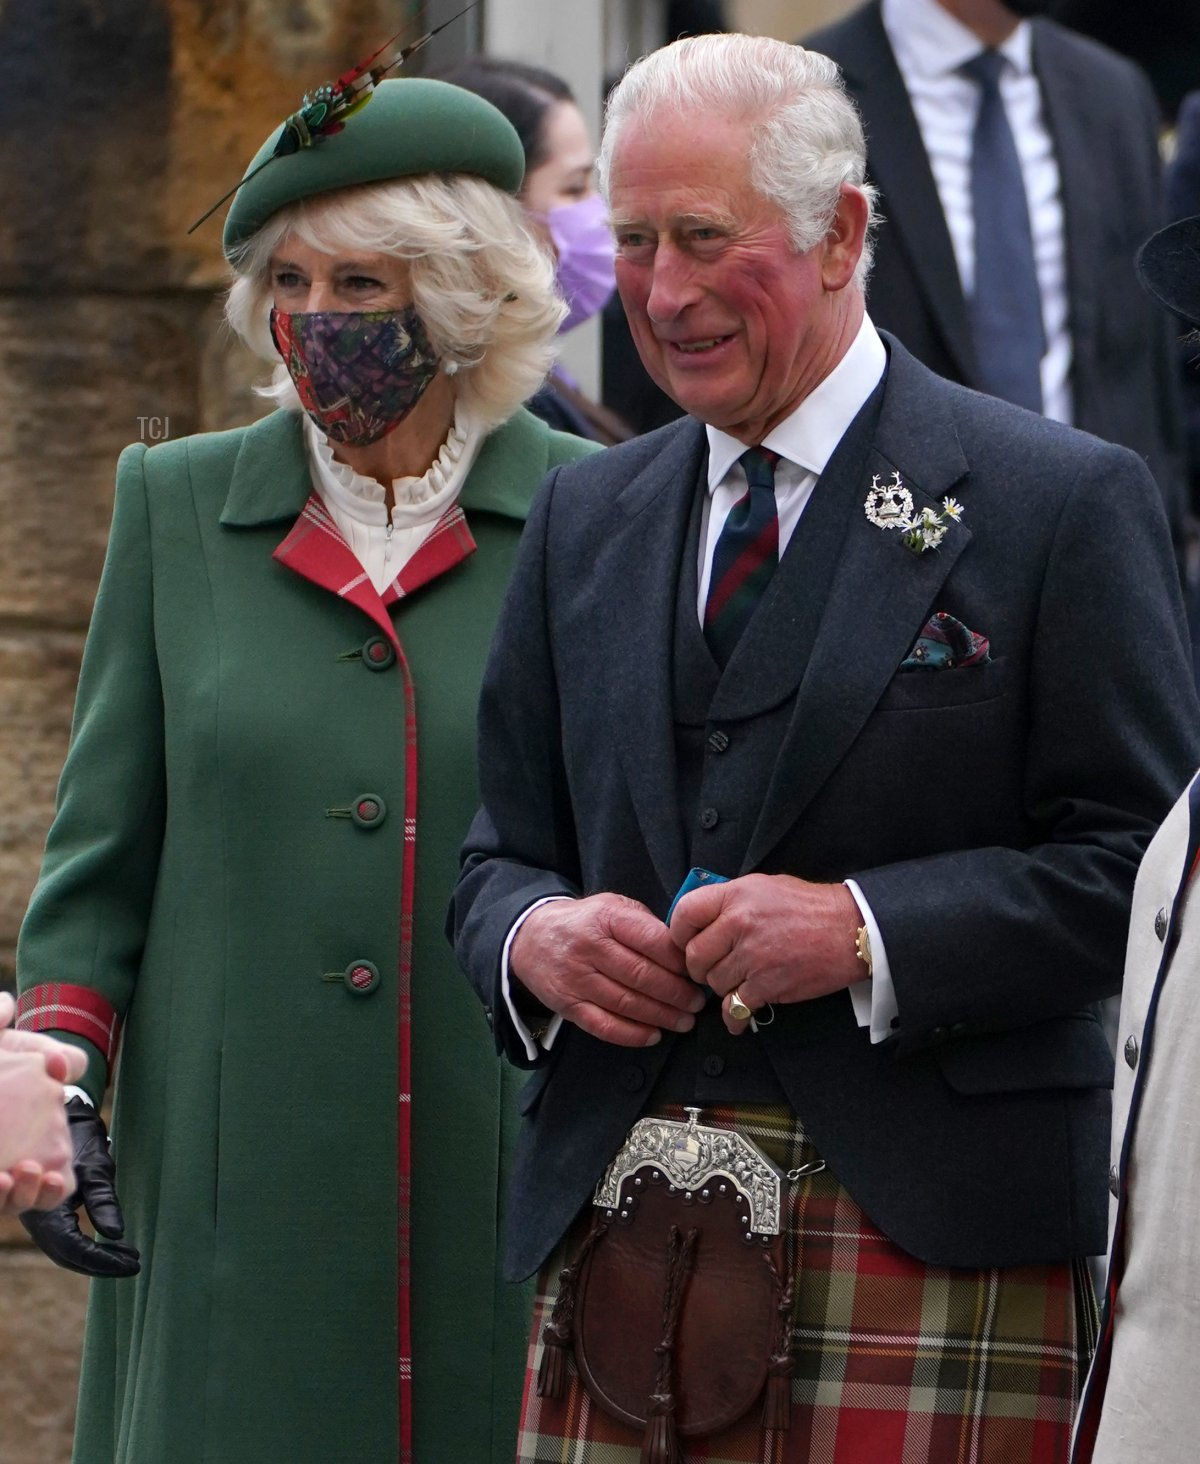 Camilla, Duchess of Cornwall and Prince Charles, Prince of Wales, known as the Duke and Duchess of Rothesay when in Scotland, arrive for the opening of the sixth session of the Scottish Parliament on October 02, 2021 in Edinburgh, Scotland